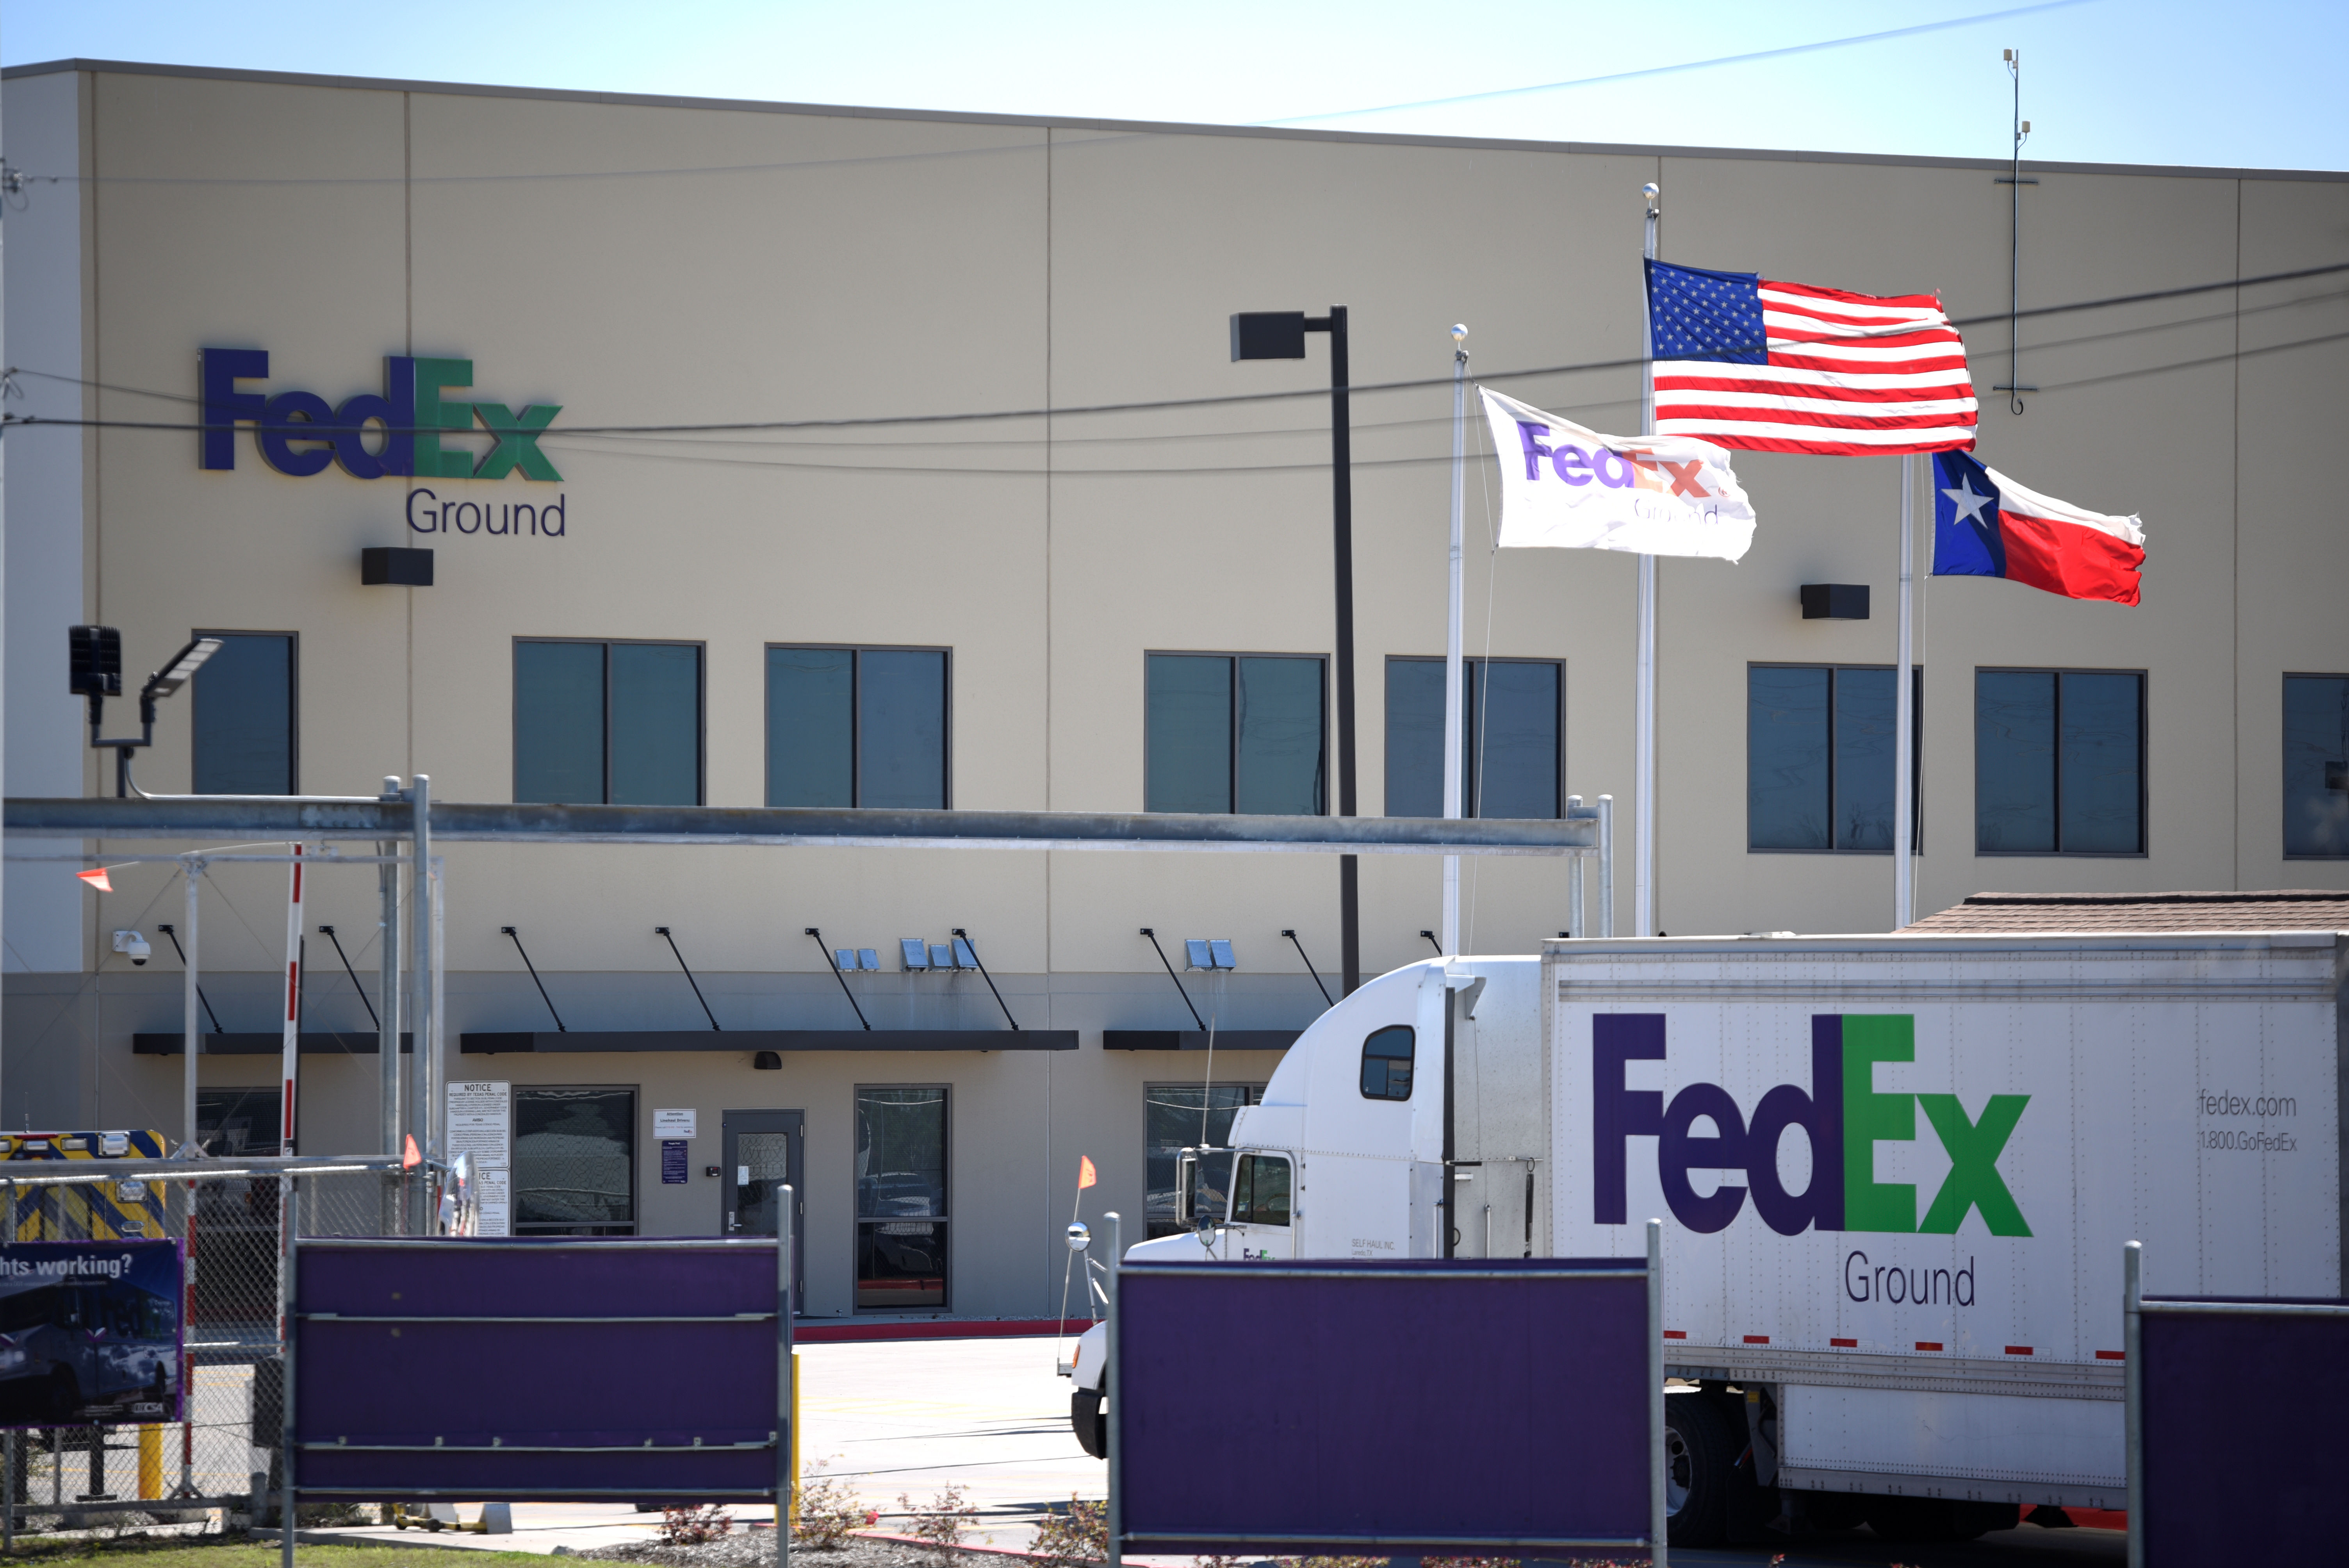 A FedEx truck is seen outside FedEx facility following the blast, in Schertz, Texas, U.S., March 20, 2018. REUTERS/Sergio Flores